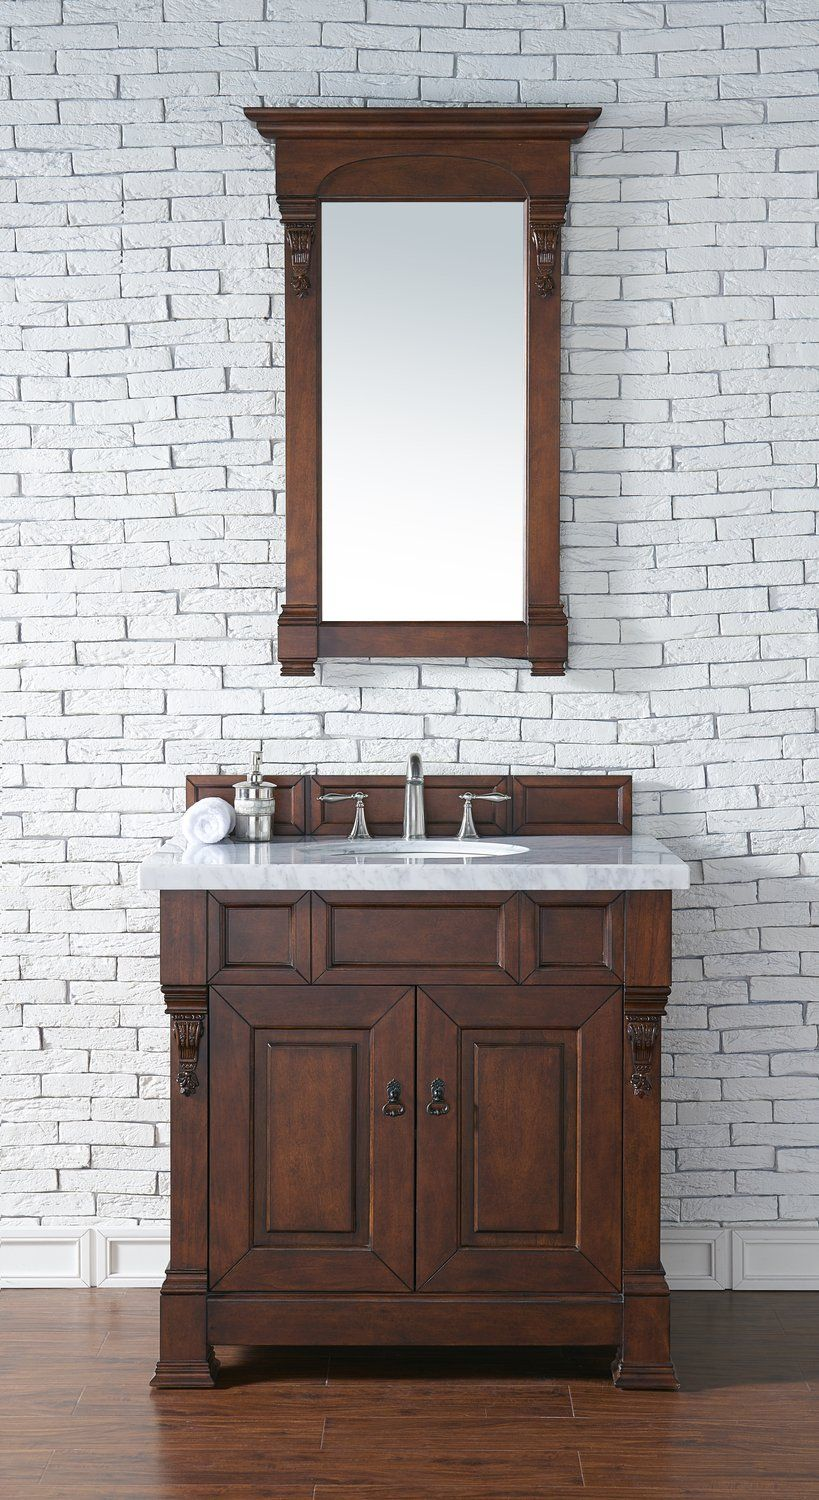 Brookfield Warm Cherry Single Bathroom Vanity Fair Cherry Bathroom Vanity Decorating Design